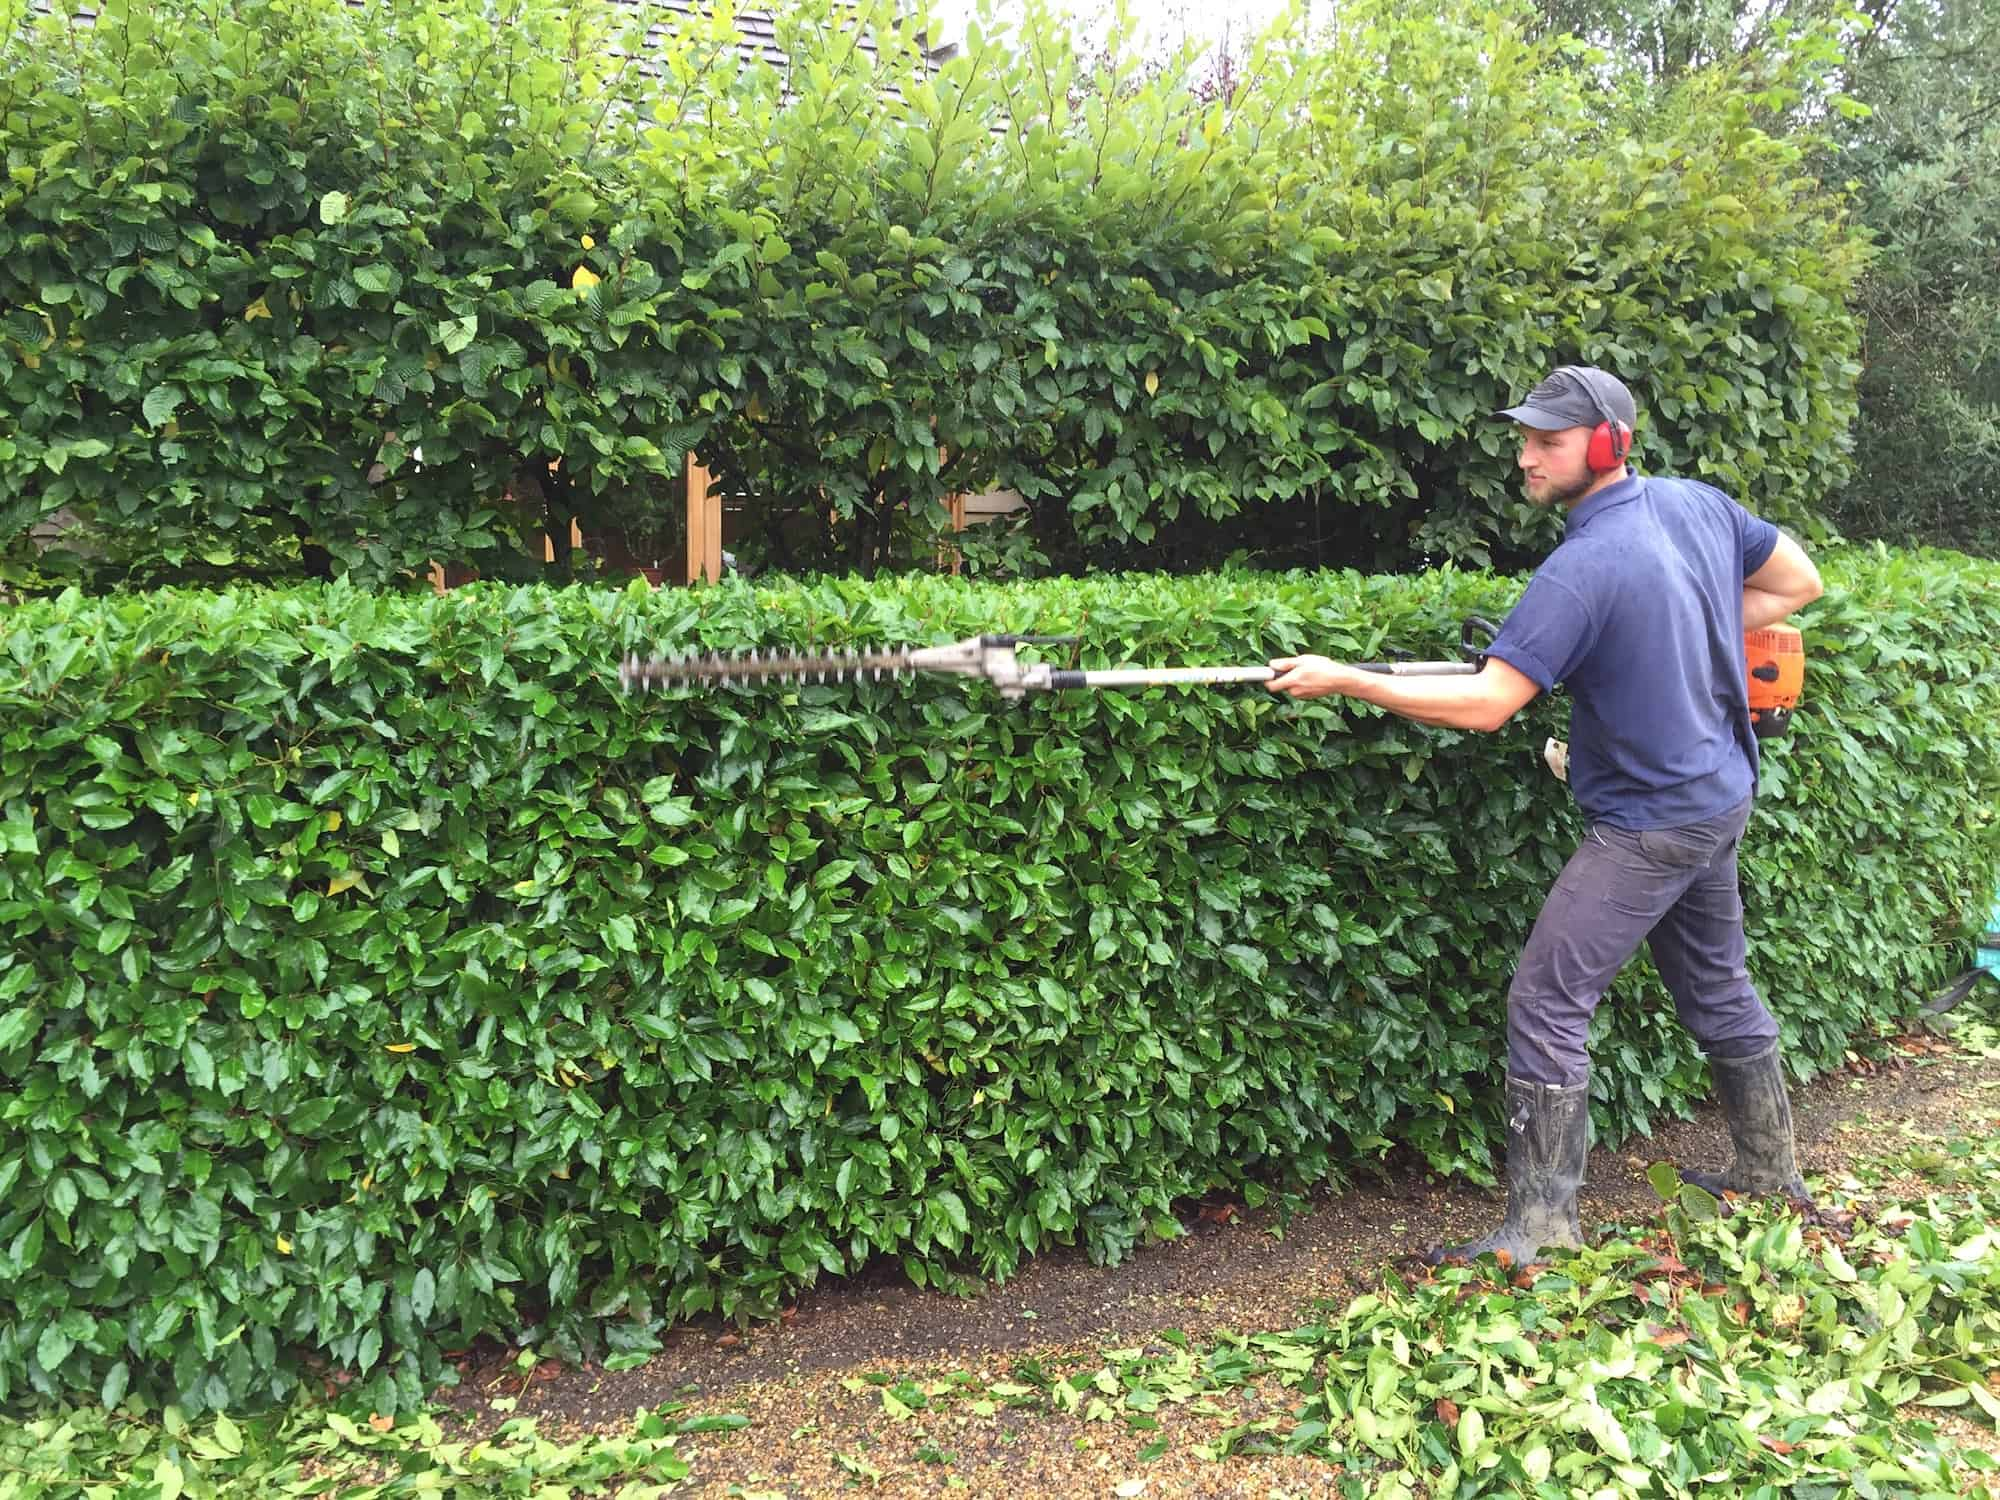 Grounds and Garden Maintenance. Hedge trimming, pruning, lawn mowing, strimming, leaf blowing, clearing and maintenance advice. Kent, Surrey, East Sussex and West Sussex.